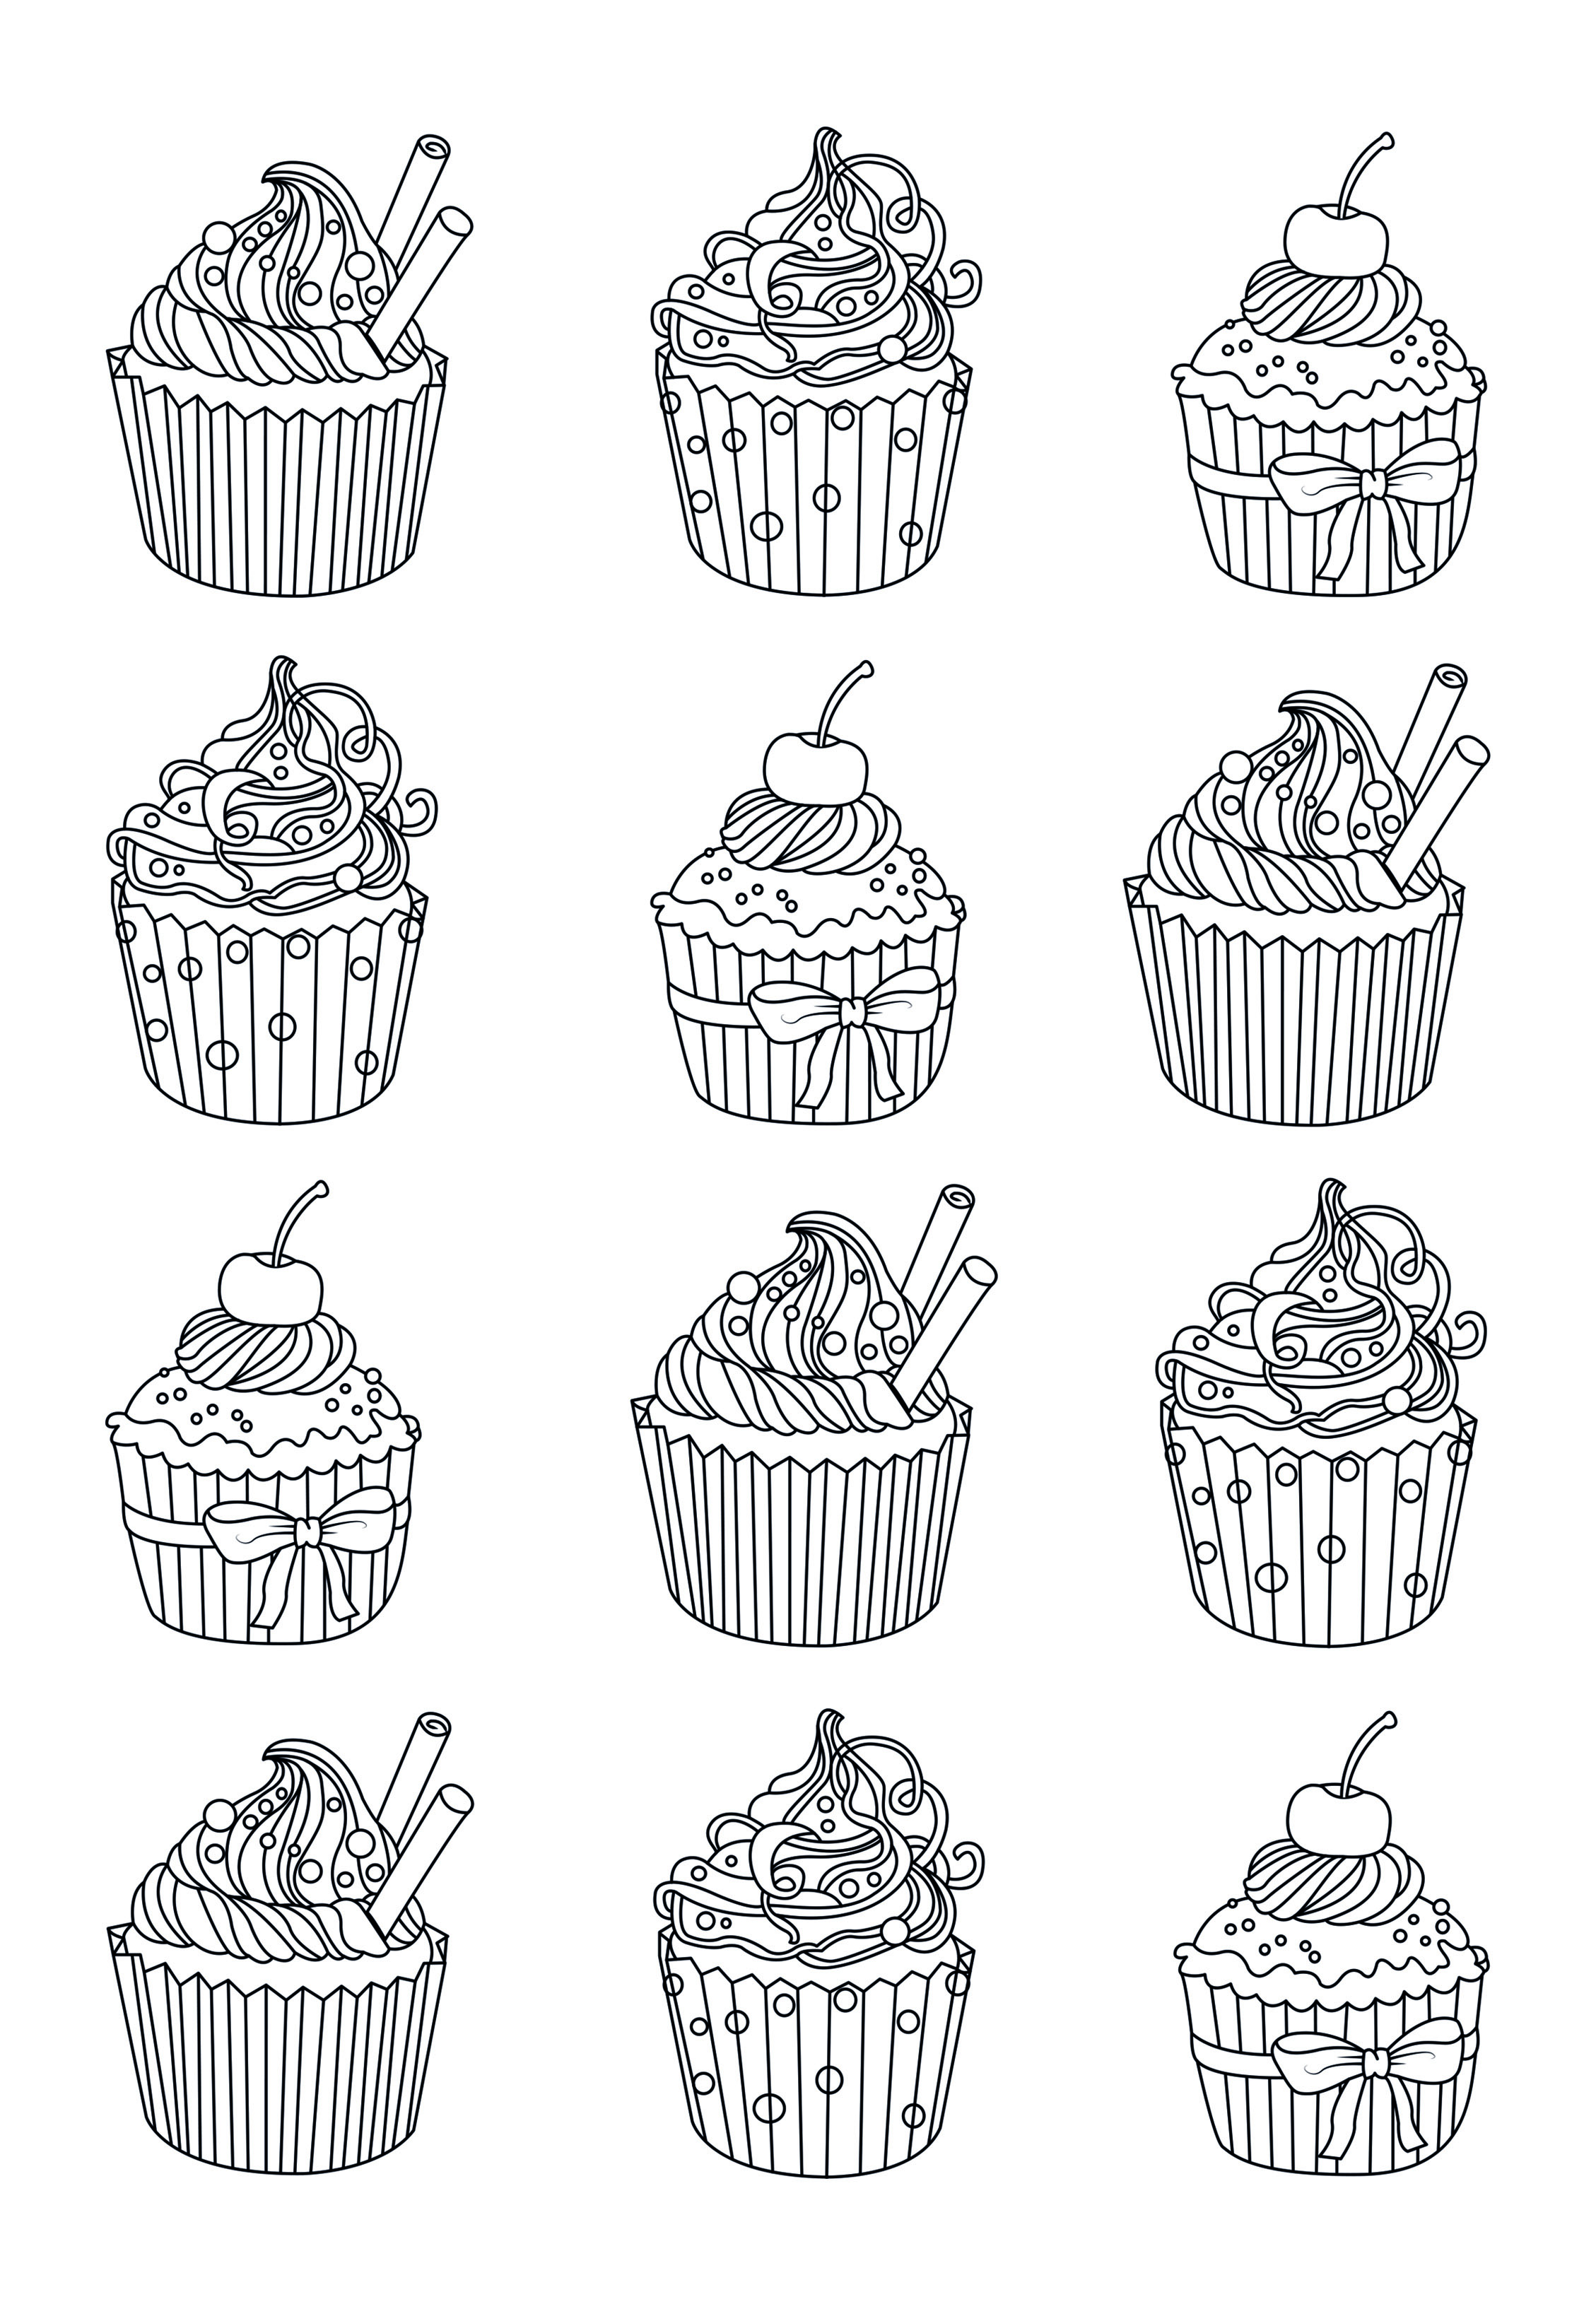 Coloring cupcakes easy Celine | Céline - Coloring pages for adults ...